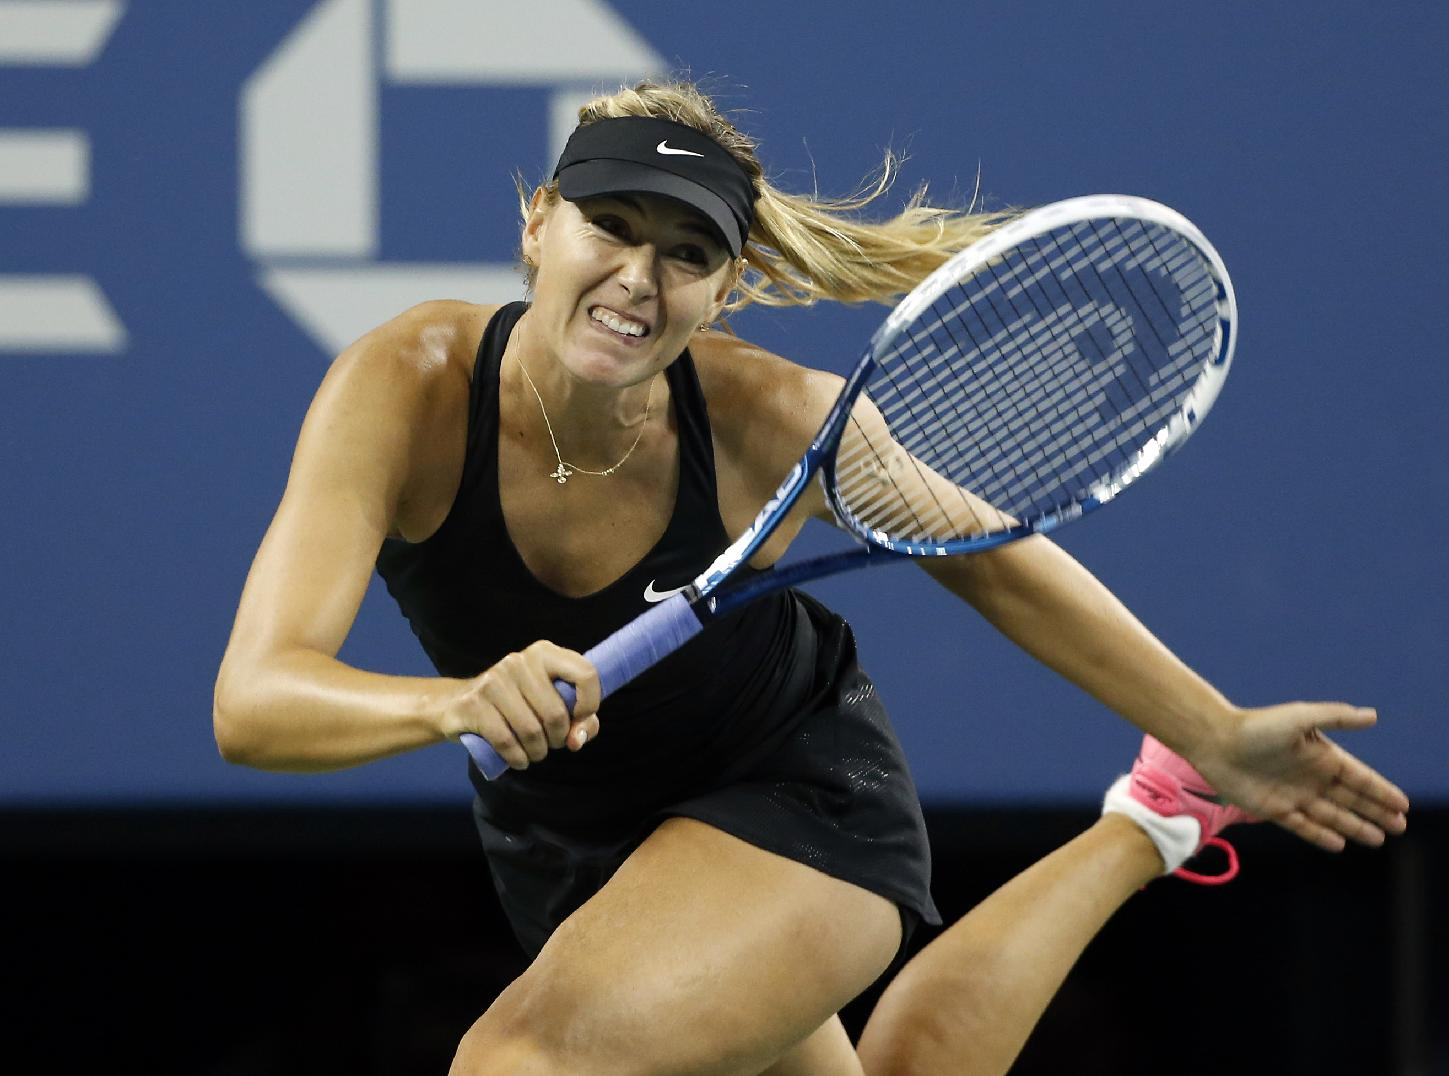 Sharapova gets past Lisicki in 2 sets at US Open